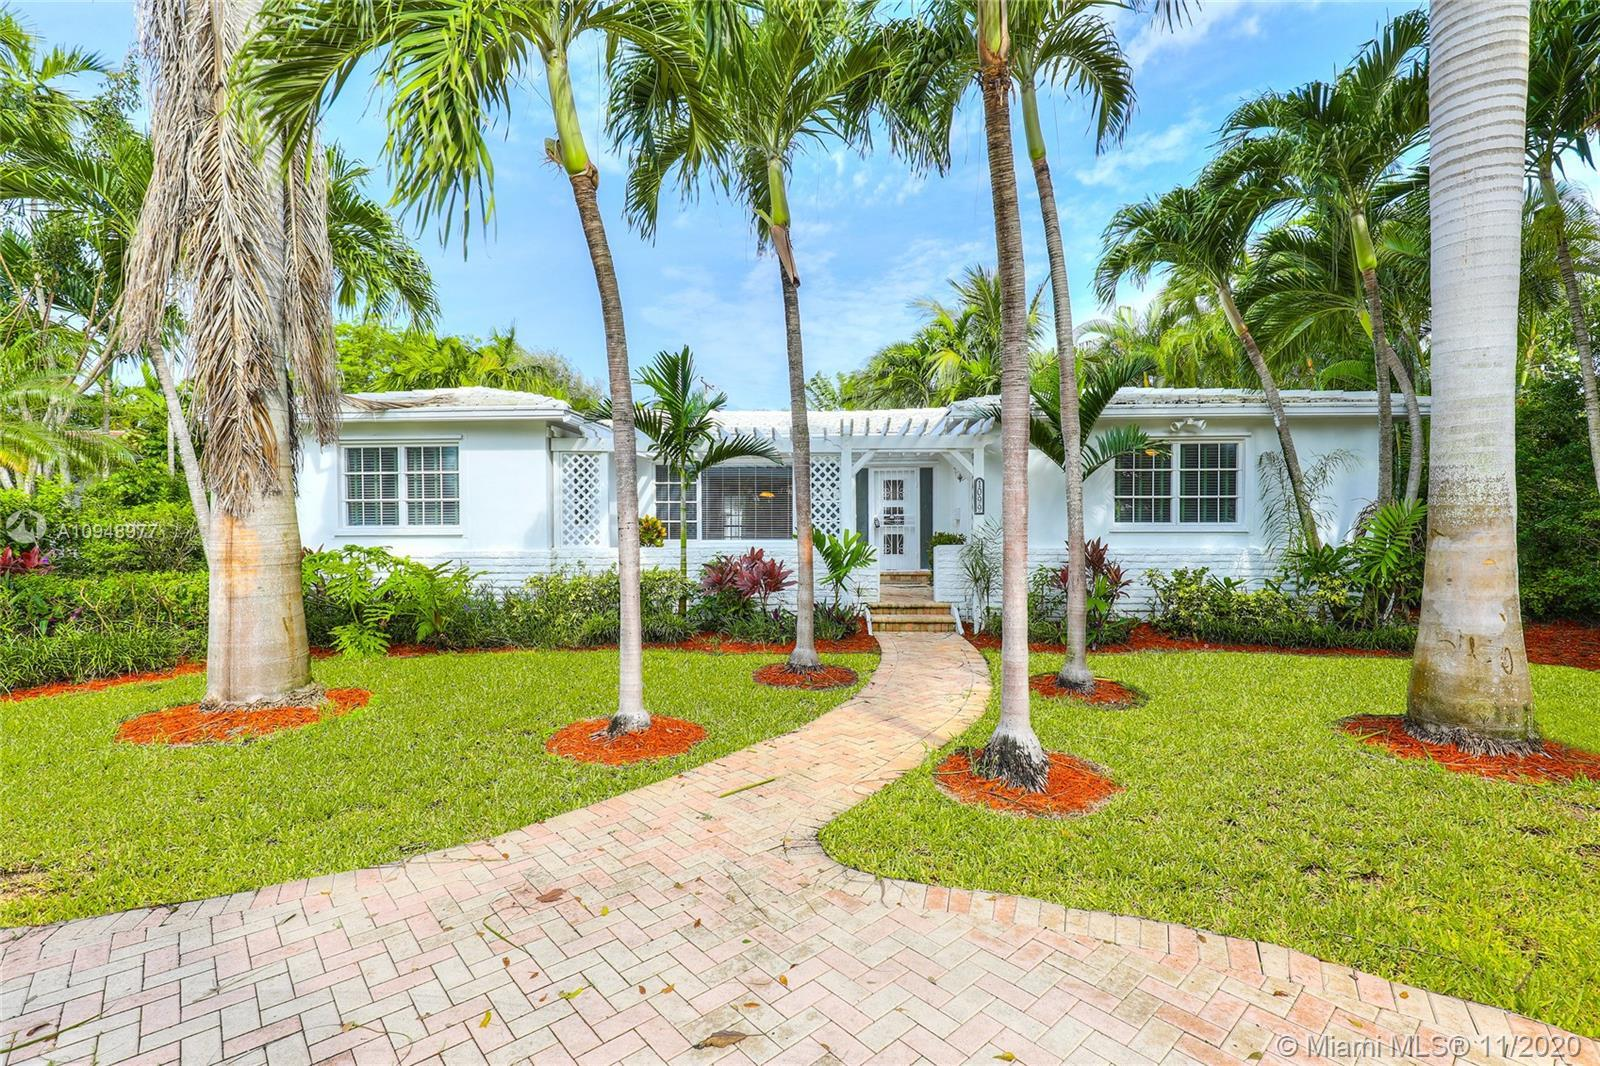 Located on the east side of Miami Shores. 3 Bedrooms/2 full Baths with a split floor plan. Lots of l